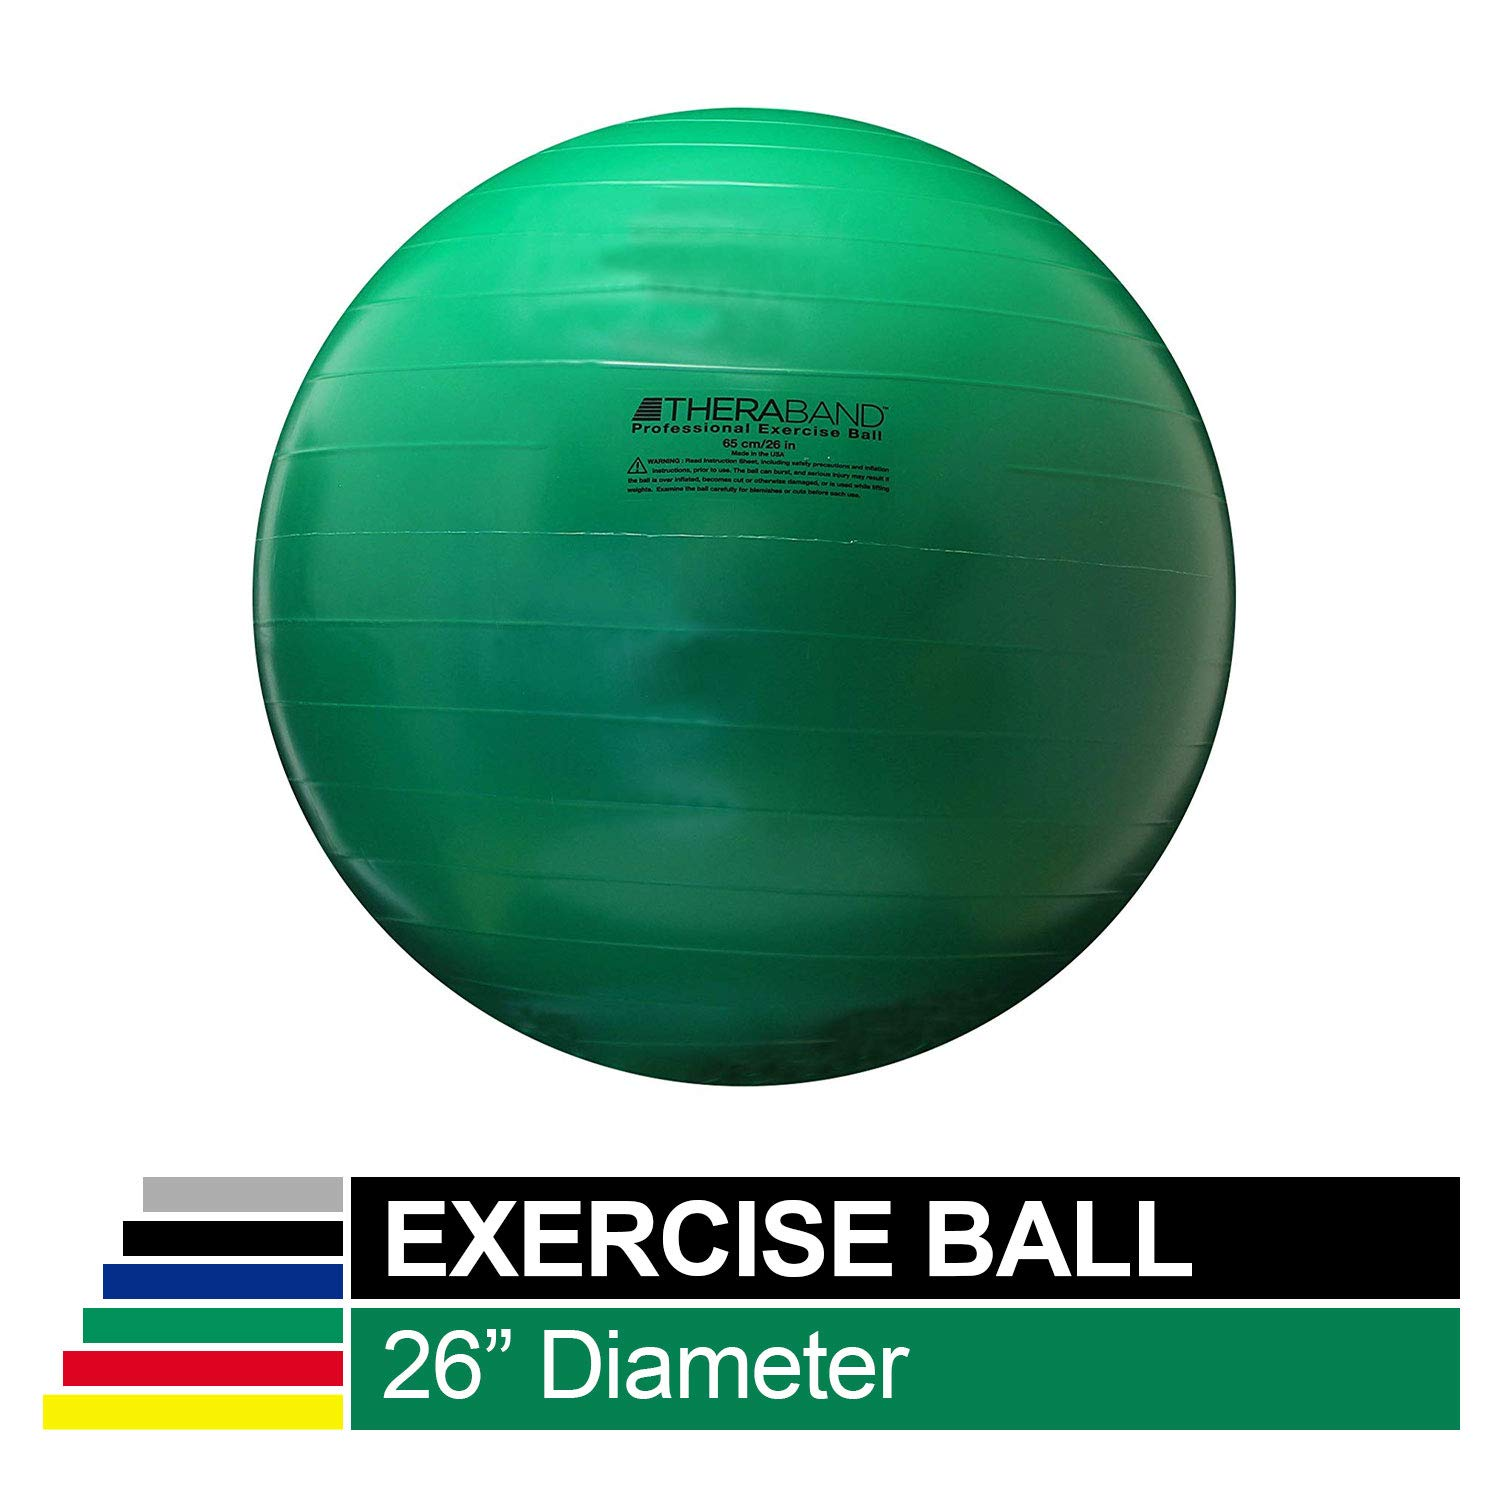 "B0000534W2 TheraBand Exercise Ball, Stability Ball with 65 cm Diameter for Athletes 5'7"" to 6'1"" Tall, Standard Fitness Ball for Posture, Balance, Yoga, Pilates, Core, Rehab, Green 61AQS4a8VvL"